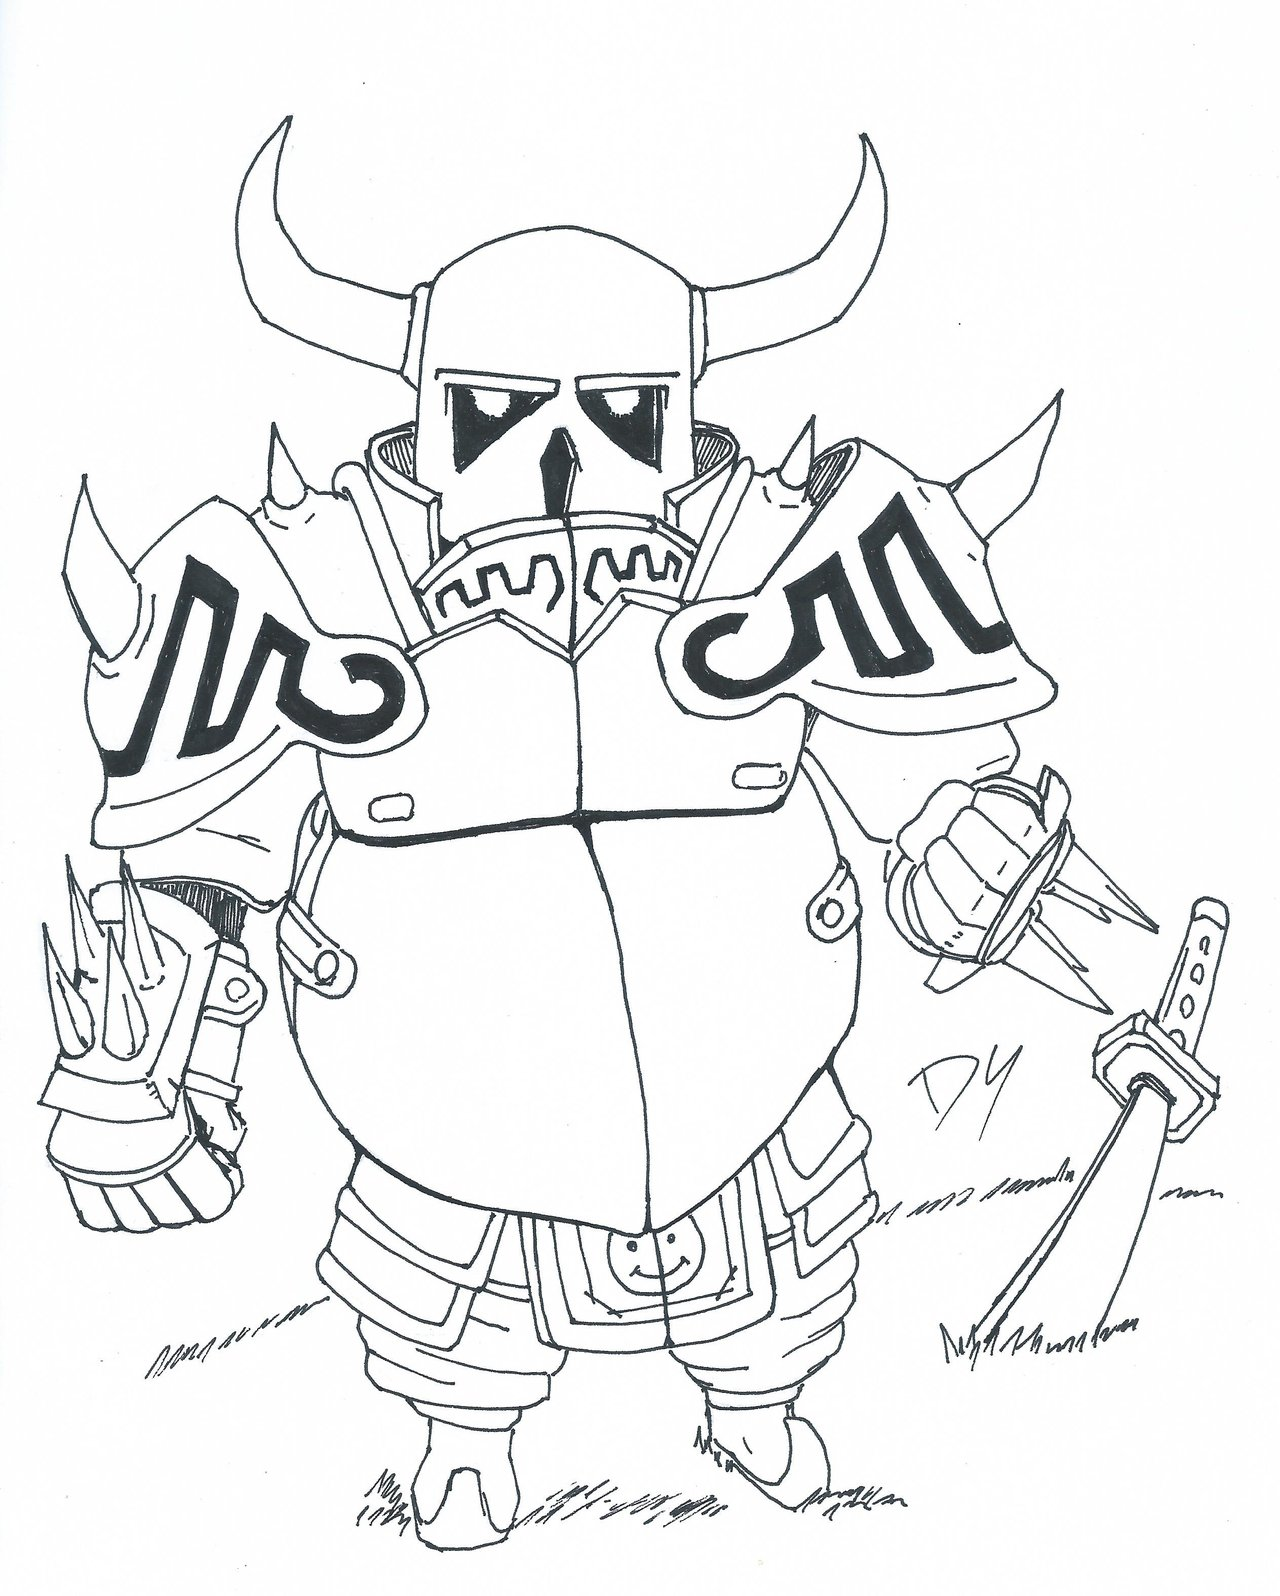 The Best Free Pekka Drawing Images Download From 9 Free